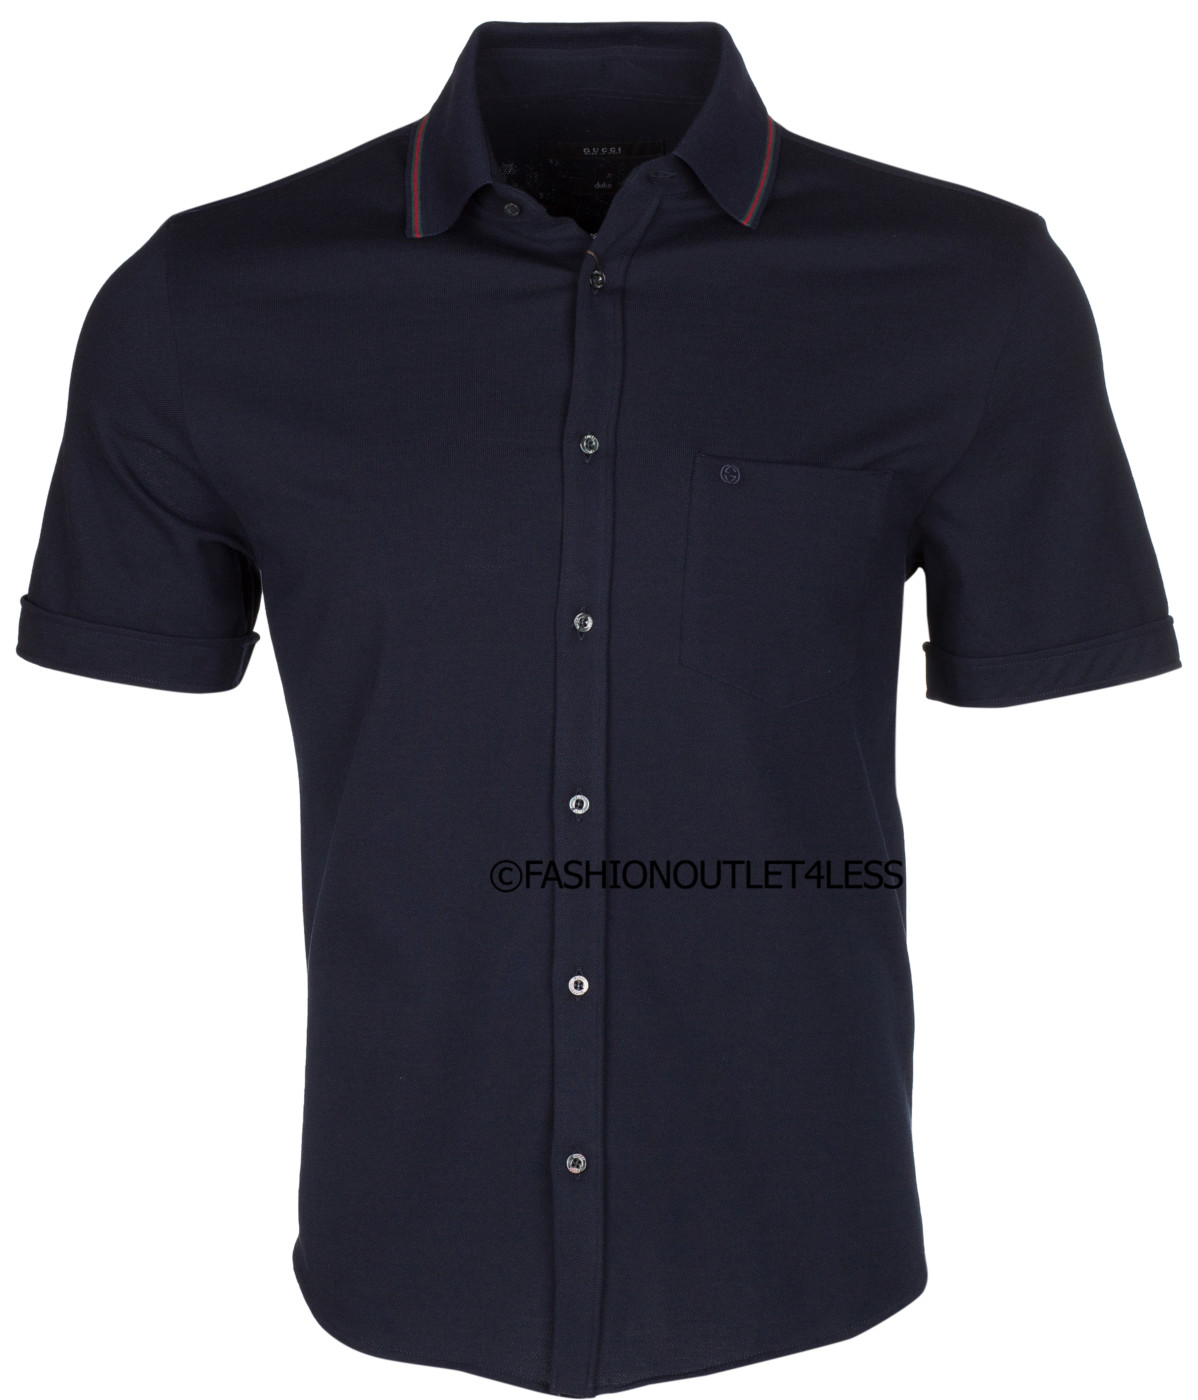 f069a855 Gucci Men's Dark Blue Cotton Web Detail Short Sleeve Jersey Duke Shirt